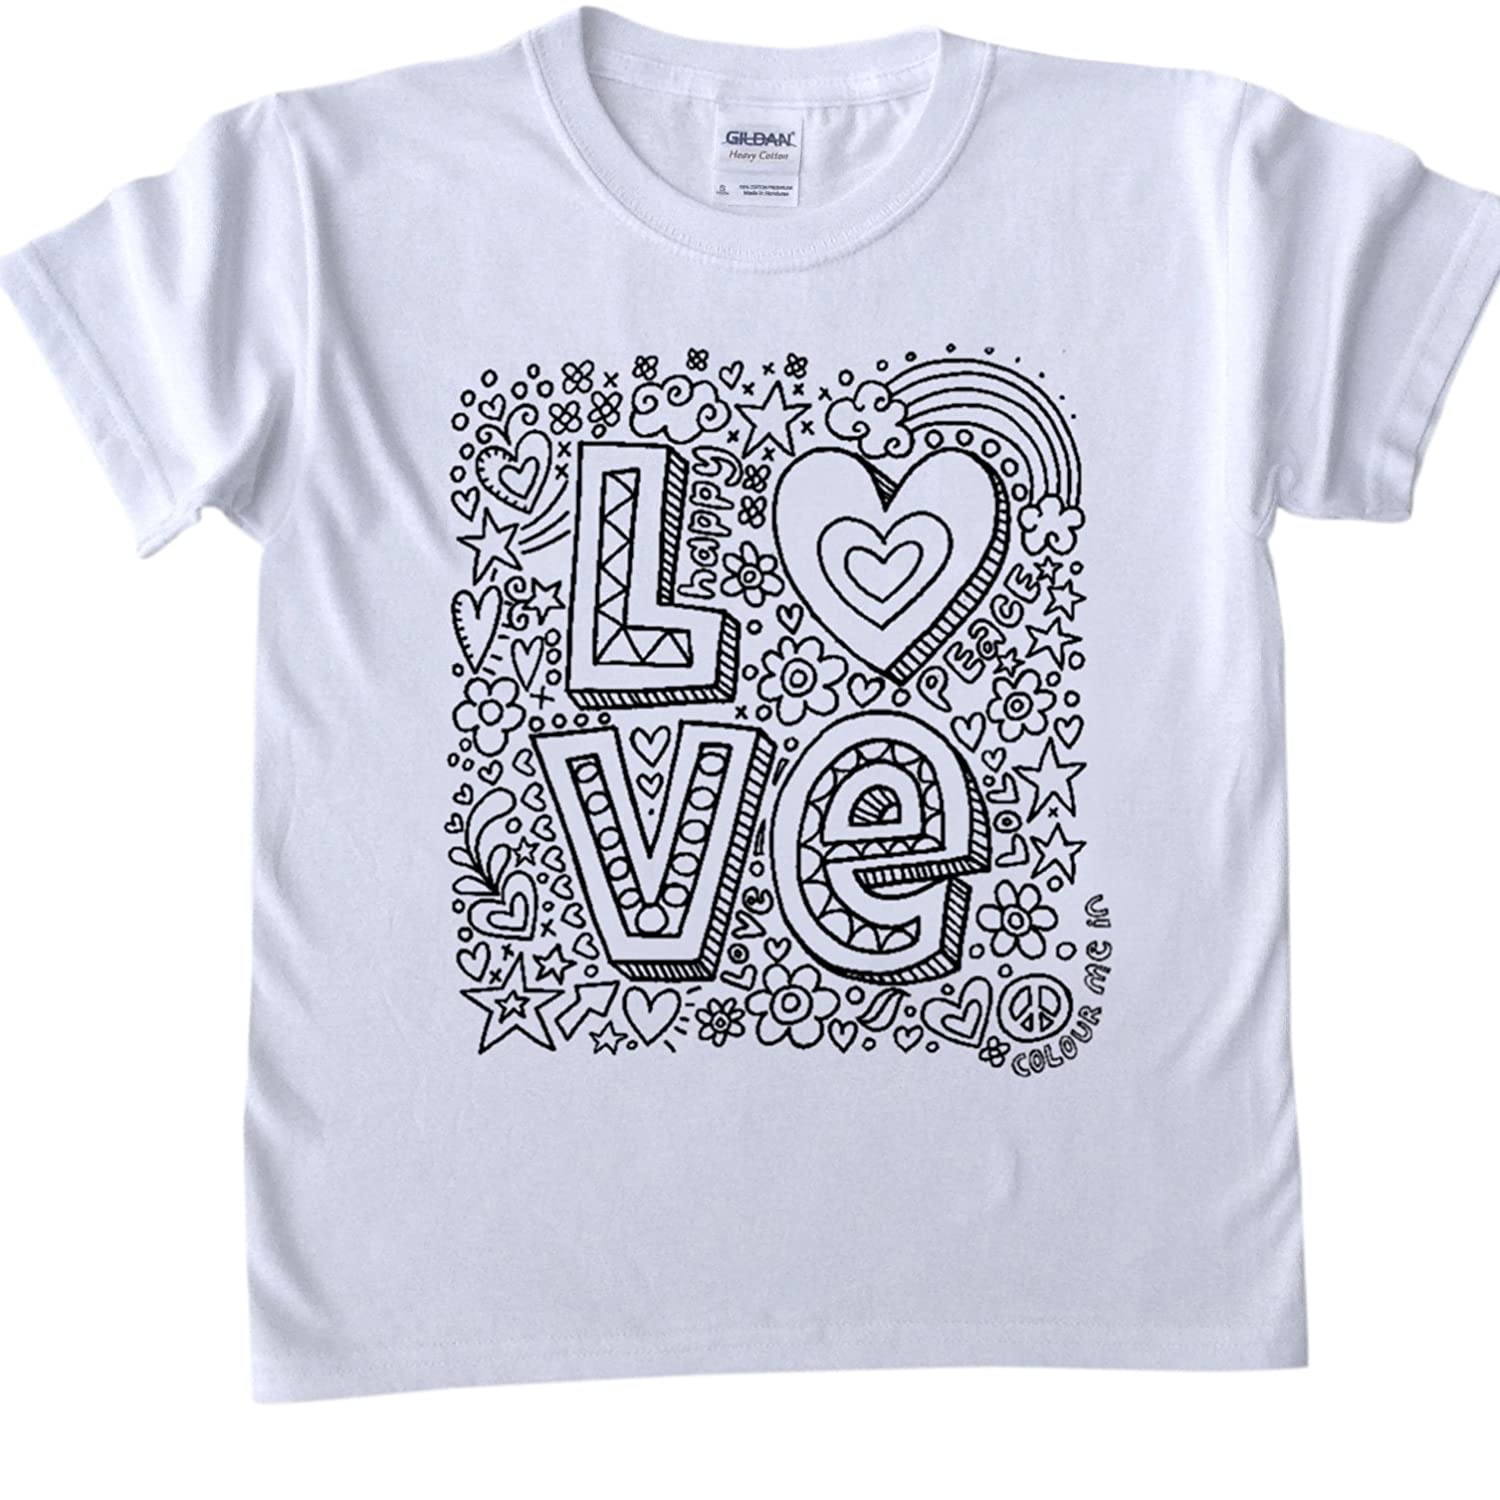 Design t shirt love - T Shirts For Kids To Colour In Printed Outline Kids Craft Love Word Design Size Age 9 11 Amazon Co Uk Kitchen Home